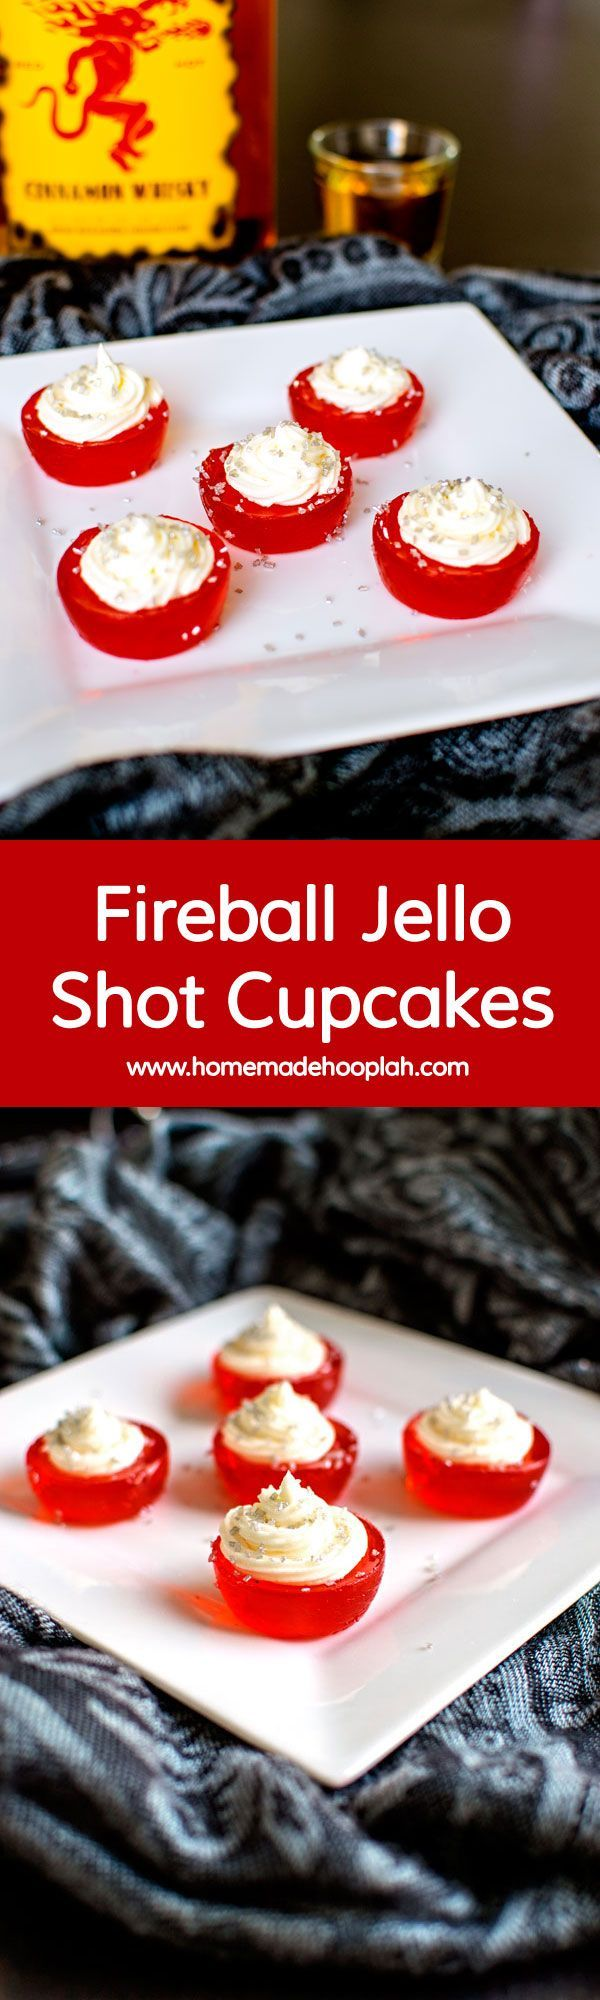 Fireball Jello Shot Cupcakes! These Fireball Jello Shot Cupcakes are infused with Fireball whisky and topped with Fireball butter cream frosting. Another way to warm up your holiday! | HomemadeHooplah.com: